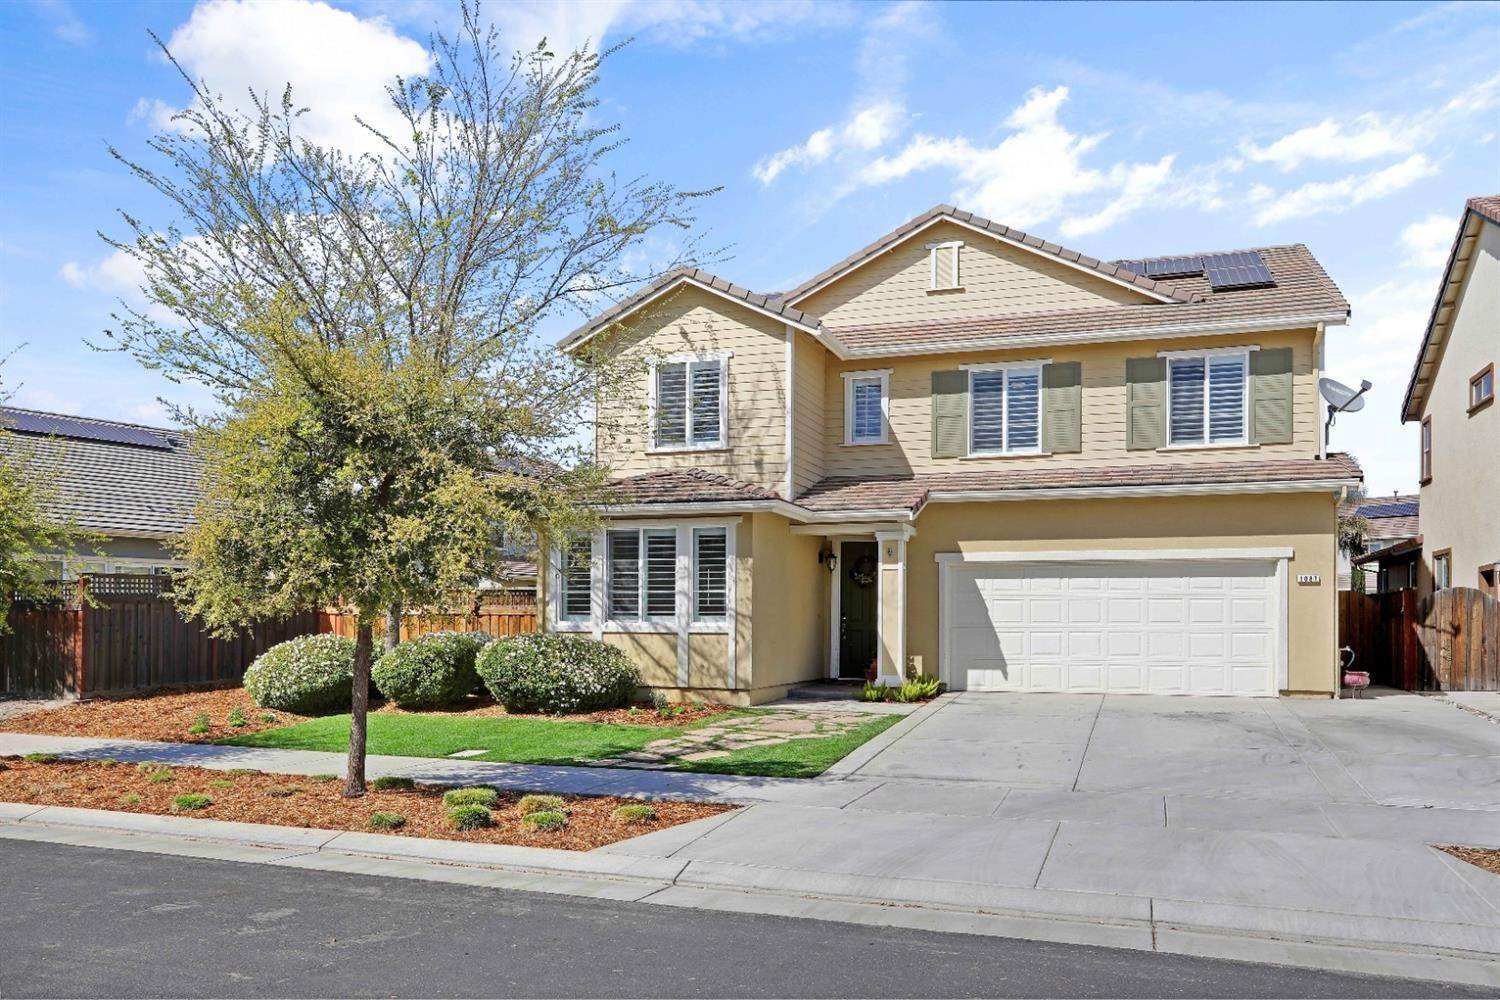 Single Family Homes for Active at 1087 Mariners Drive Lathrop, California 95330 United States